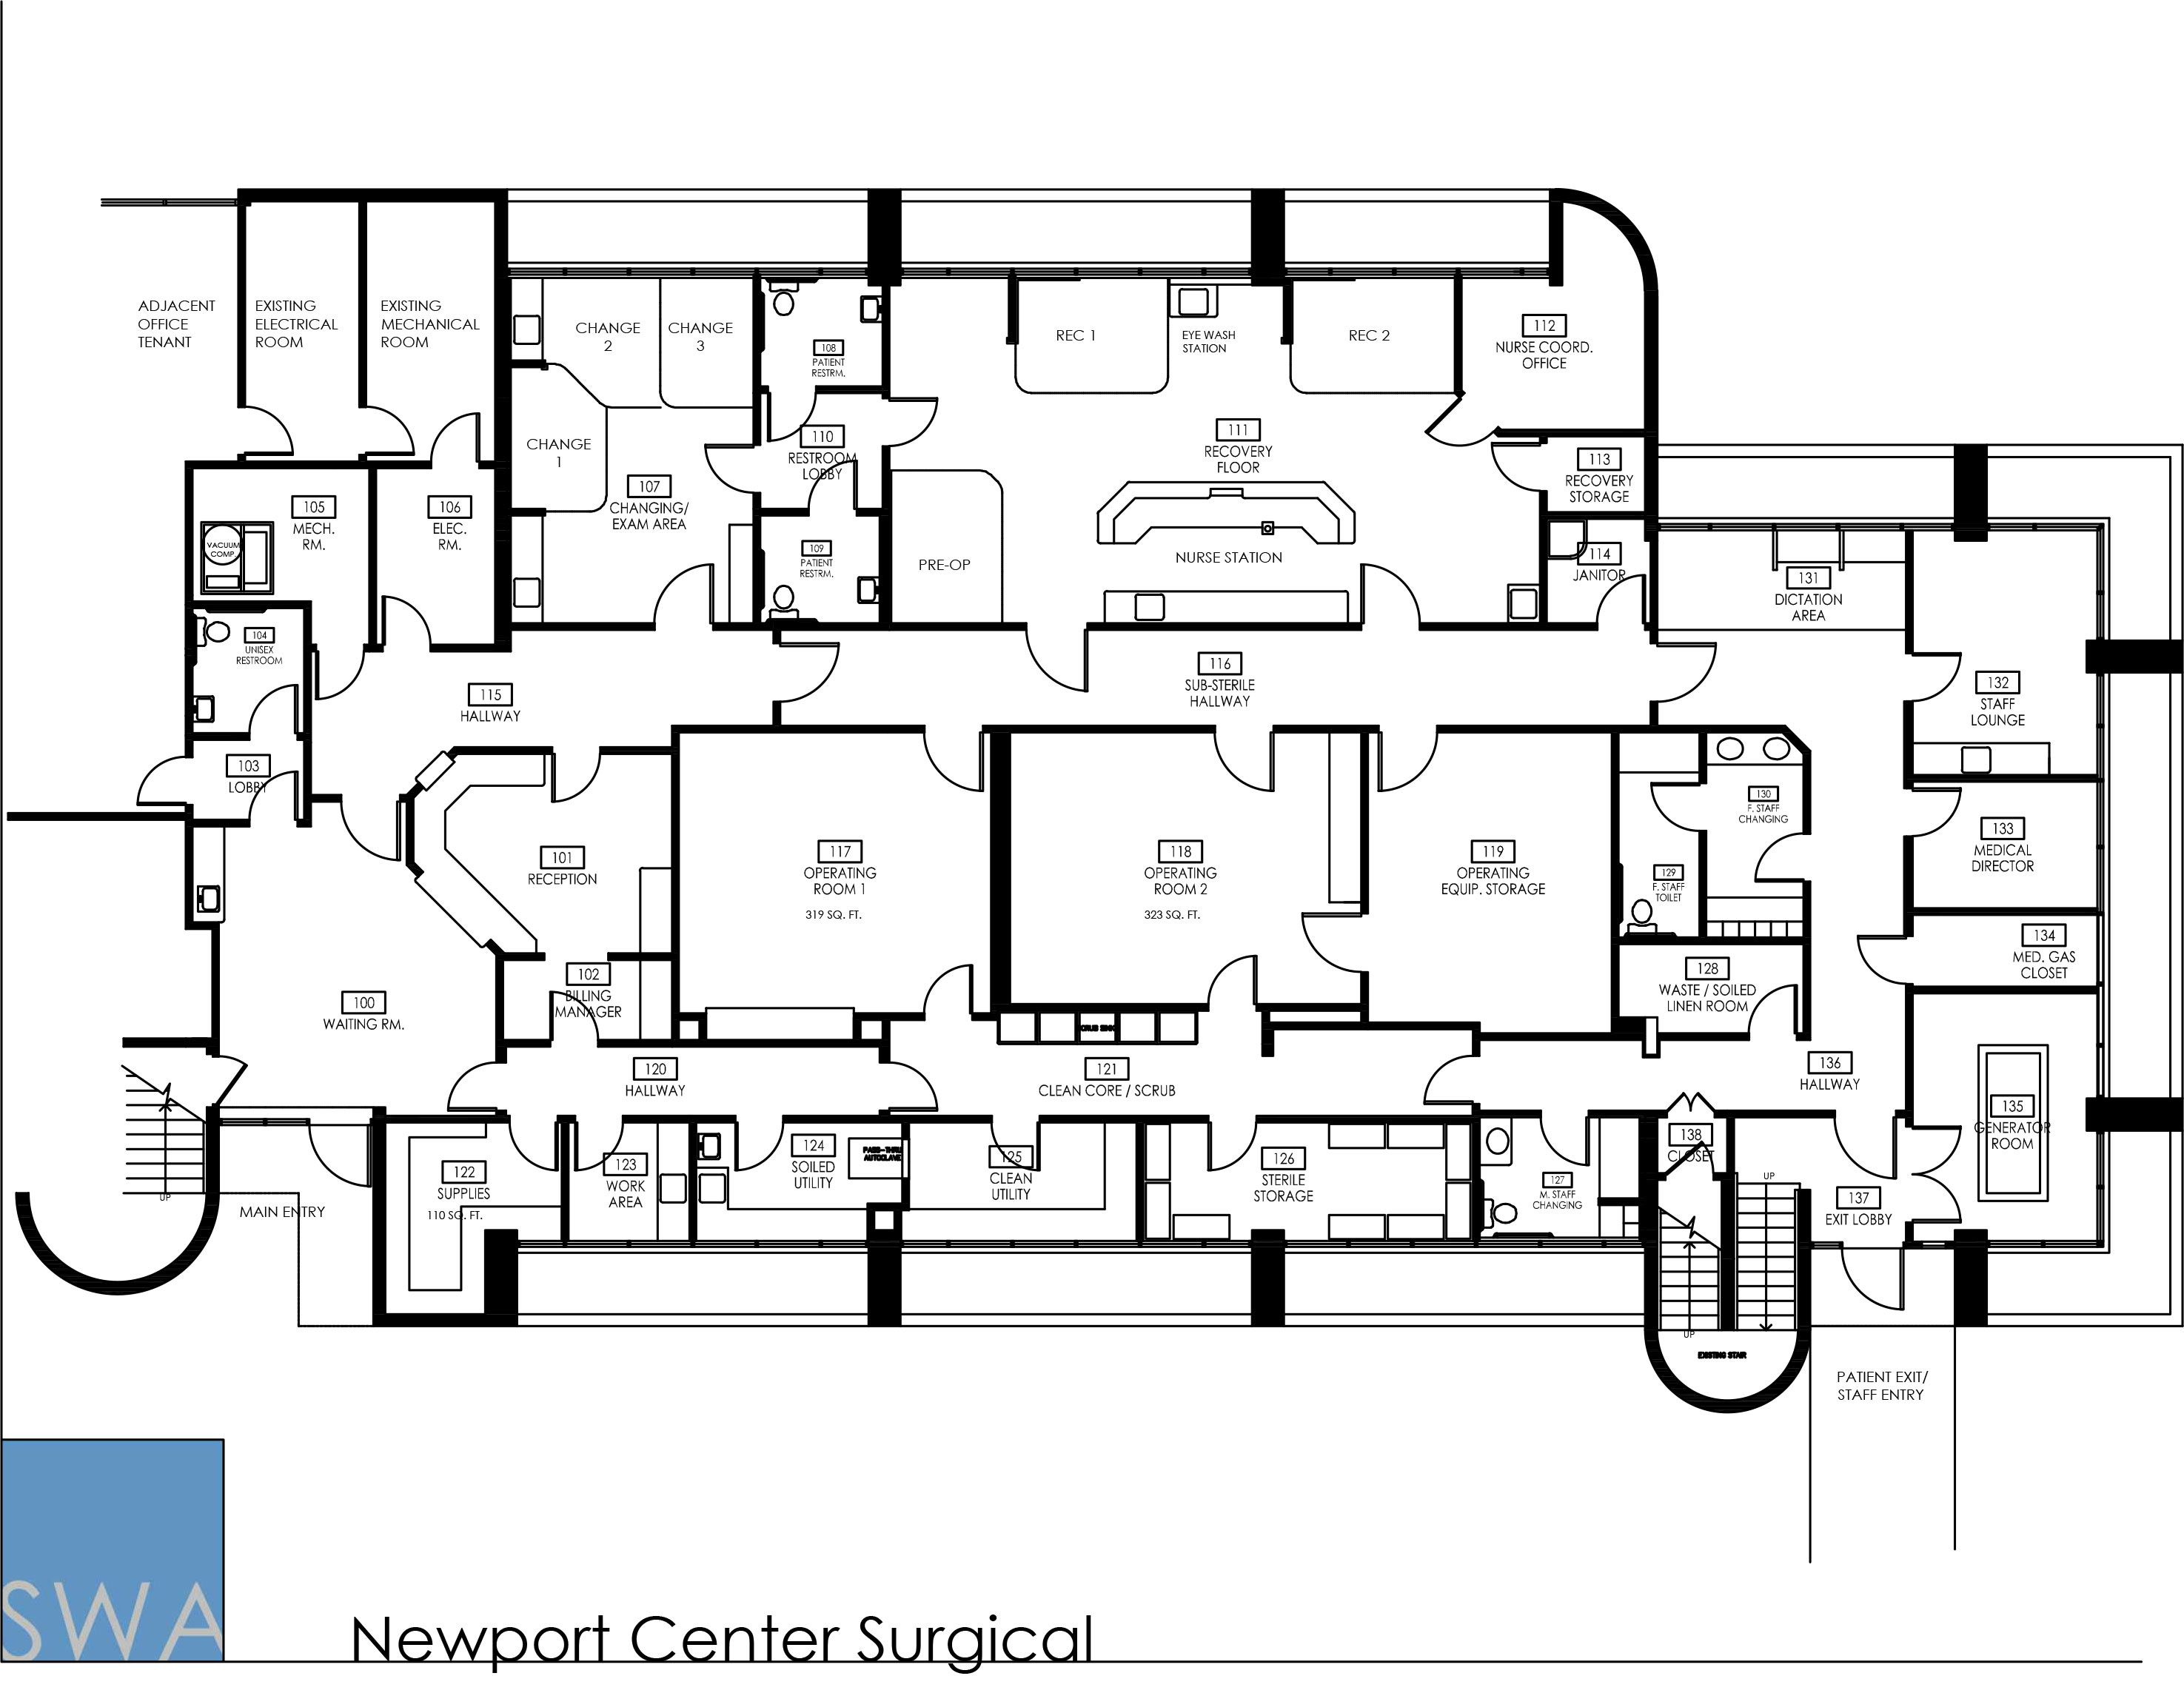 OSHPD-3 ambulatory surgery center, 3 operating rooms, with